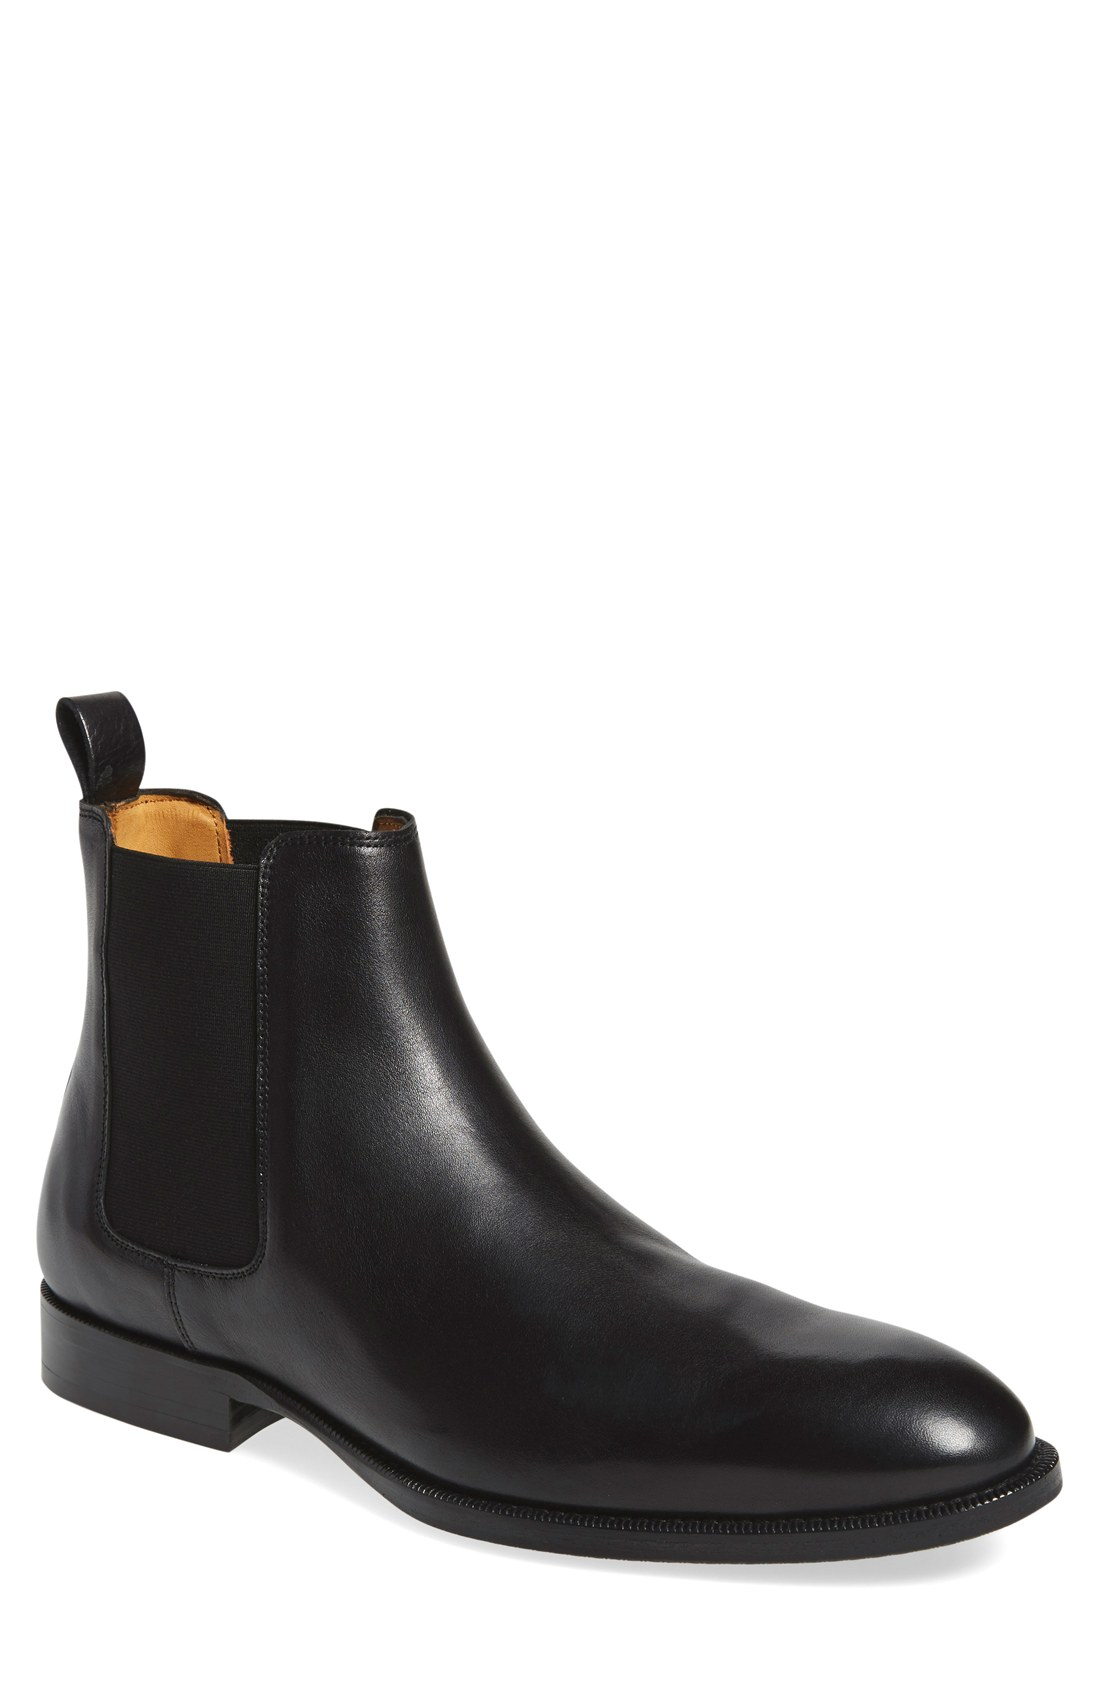 Mens Black Chelsea Boots 3WCGNH93